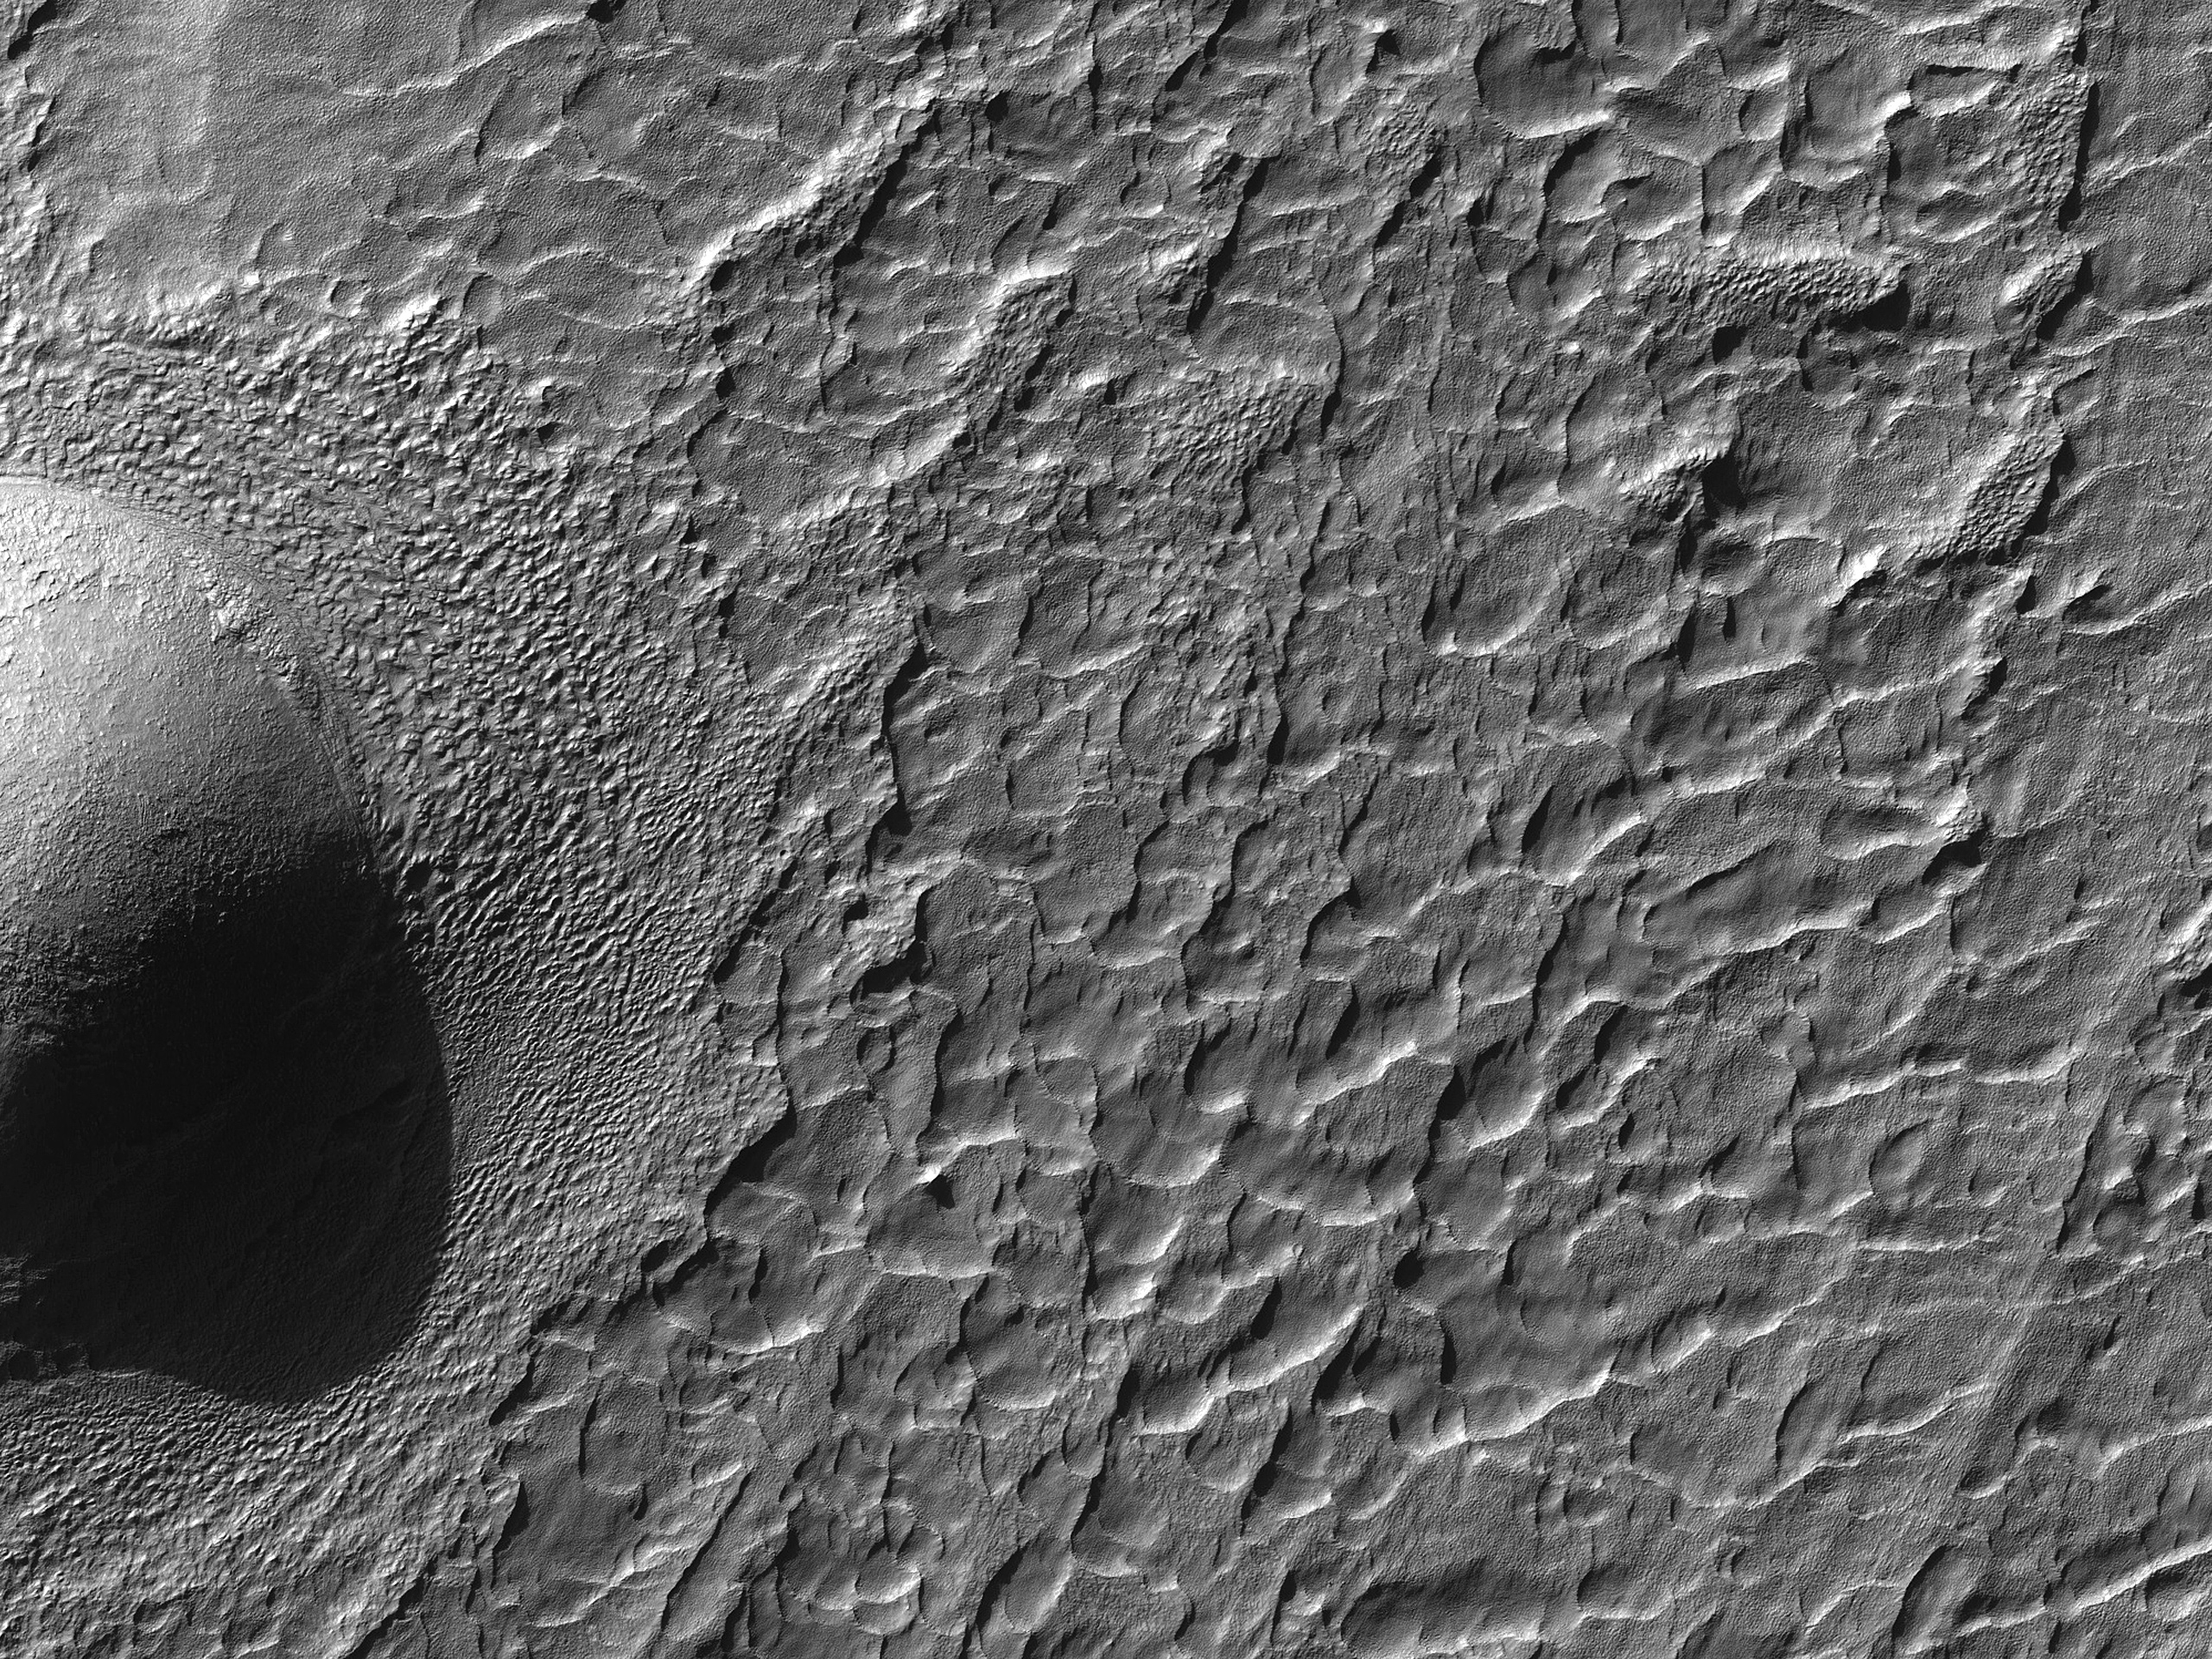 Fretted Terrain to the East of Hellas Planitia